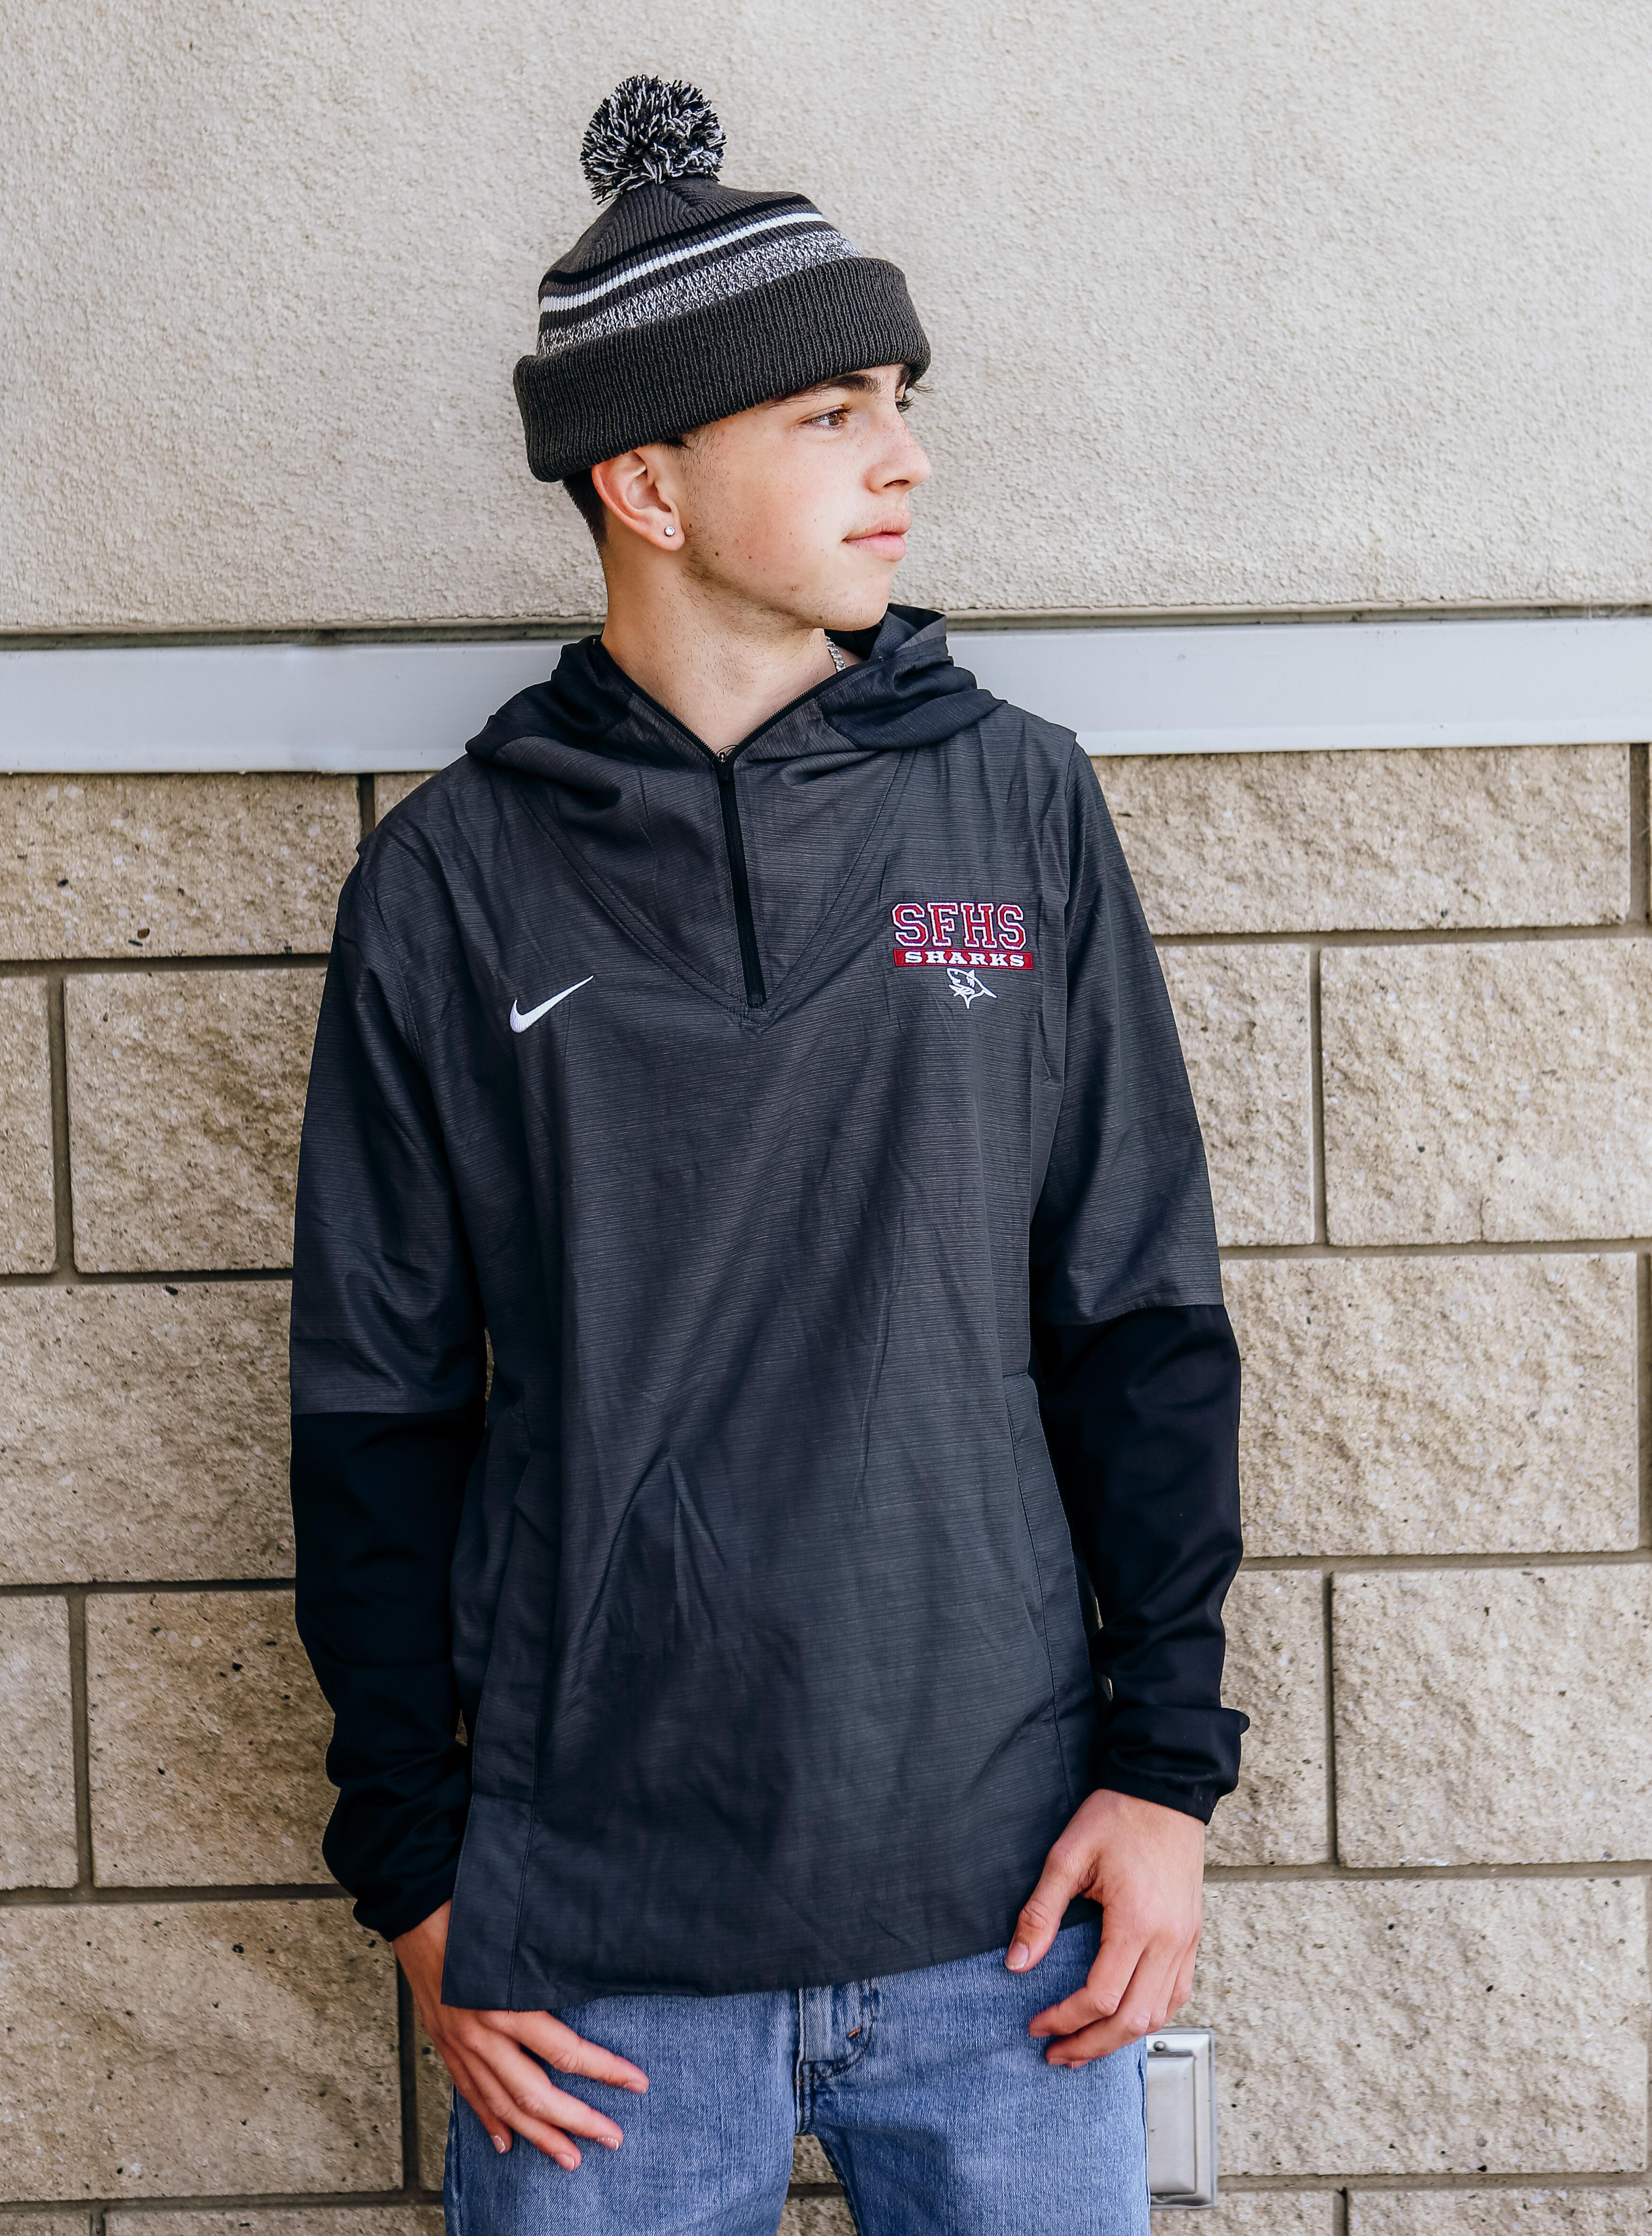 Nike 3/4 Zip Pull Over Jacket -Adult Small